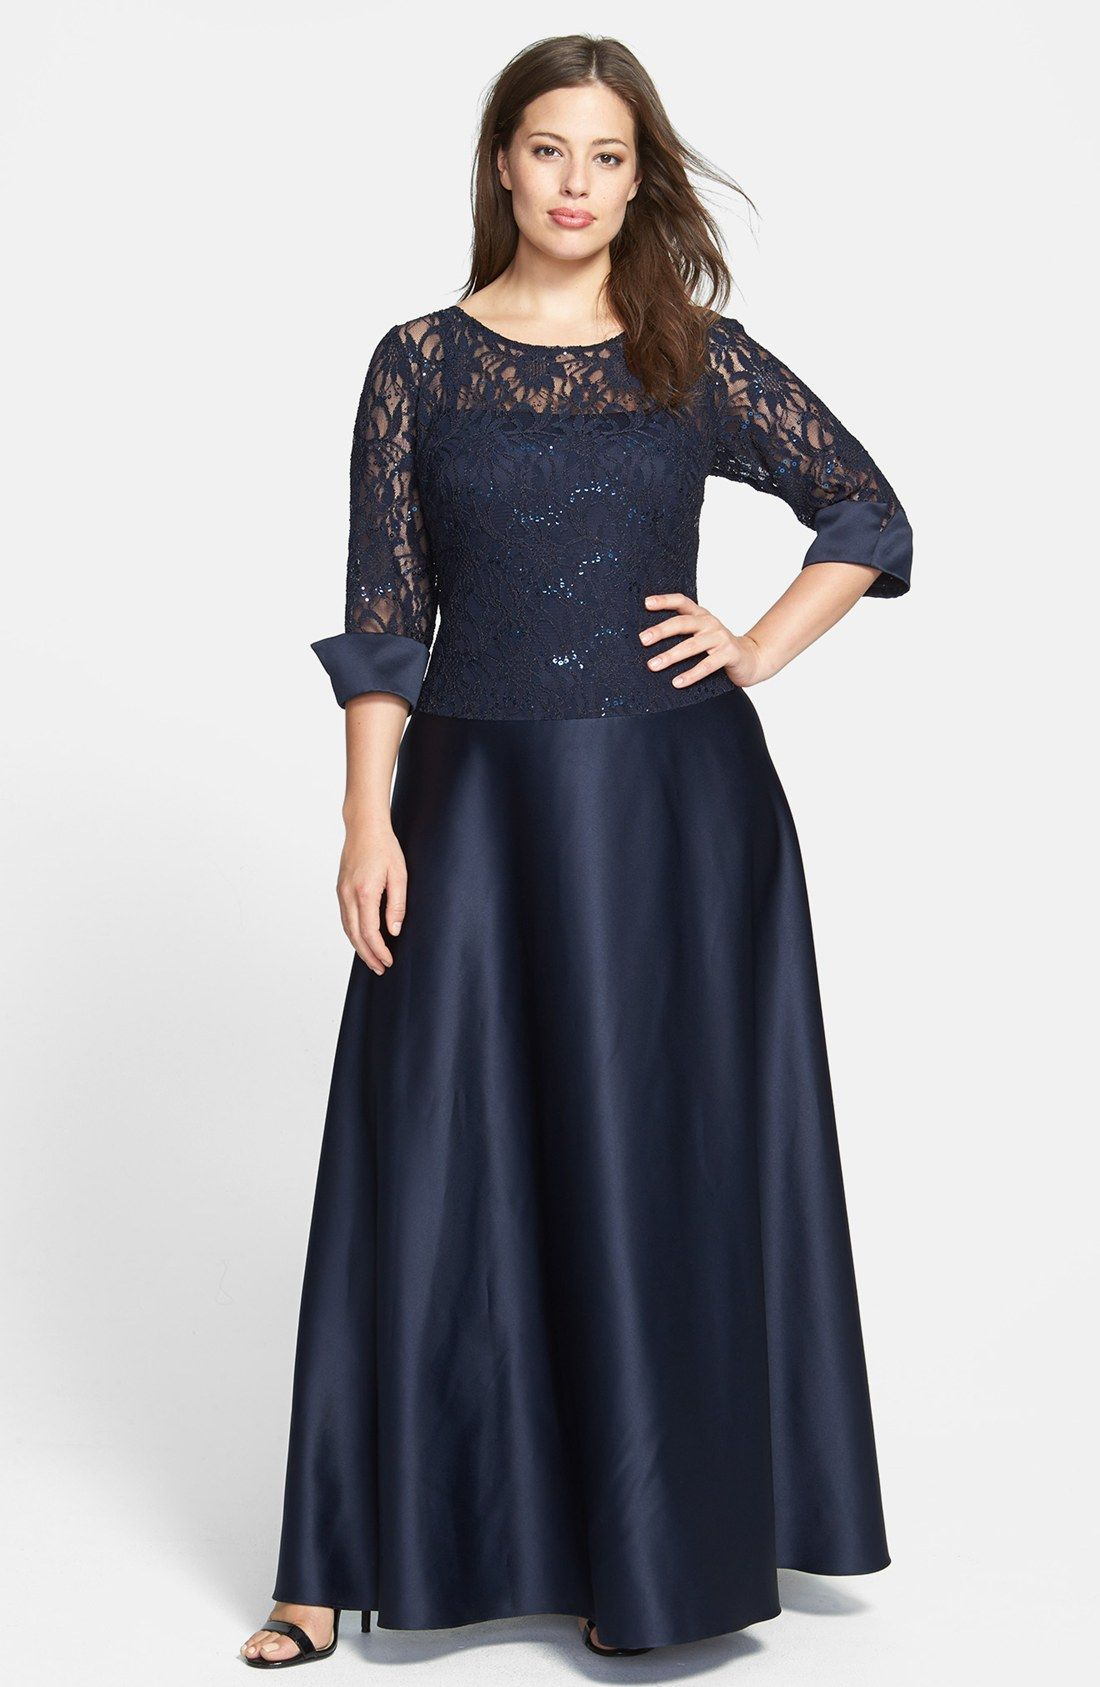 hair styles for mother of the groom xscape lace bodice satin gown plus size nordstrom 1557 | e1557ae6c139ad99395f4e4cc5e60780